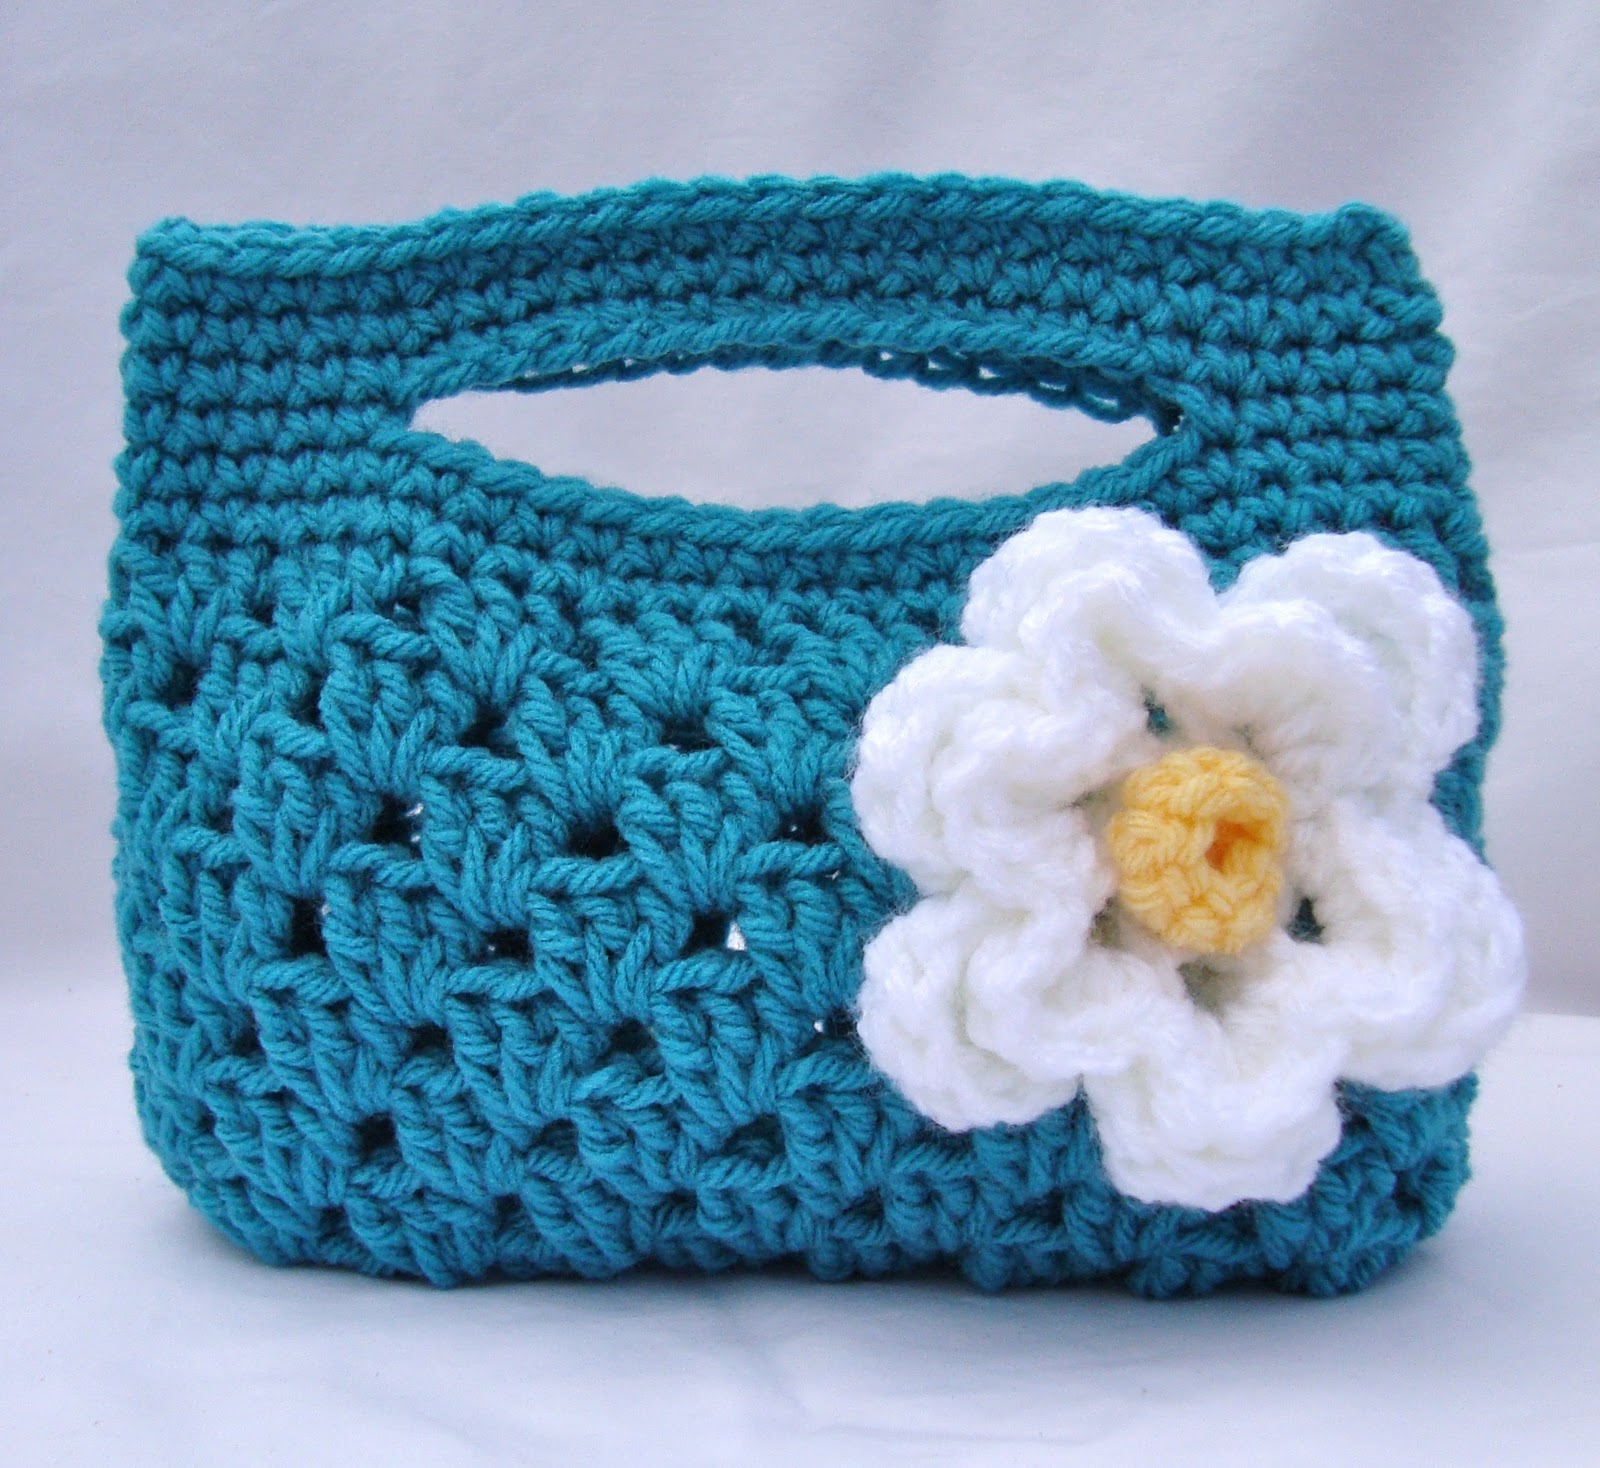 Free Crochet Patterns For Purses : tangled happy: Granny Stripe Boutique Bag